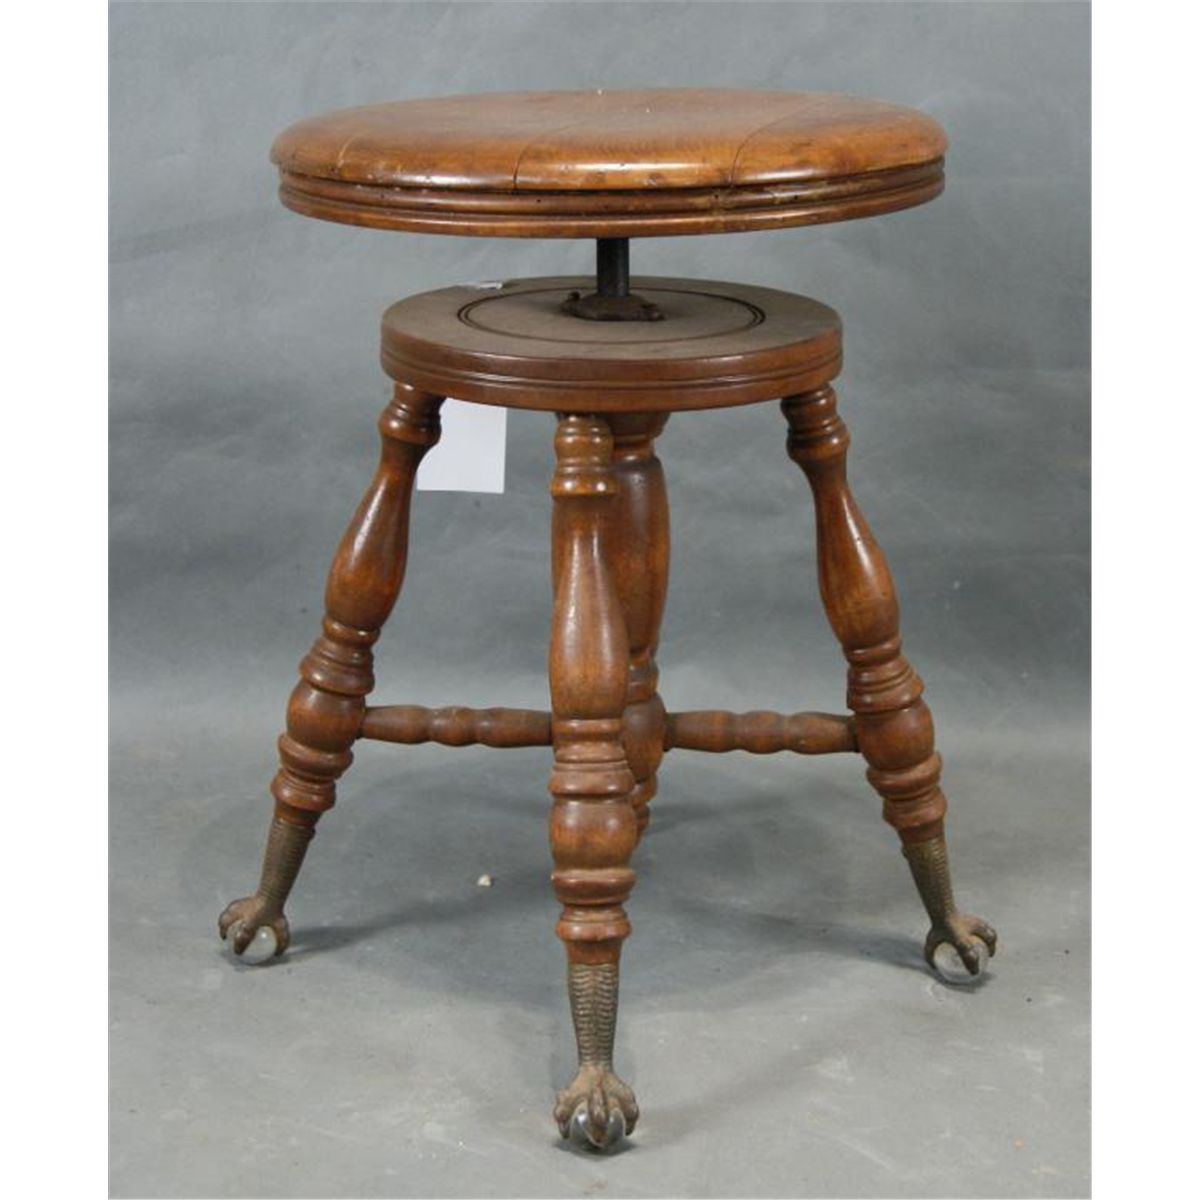 Antique Piano Bench For Sale Images